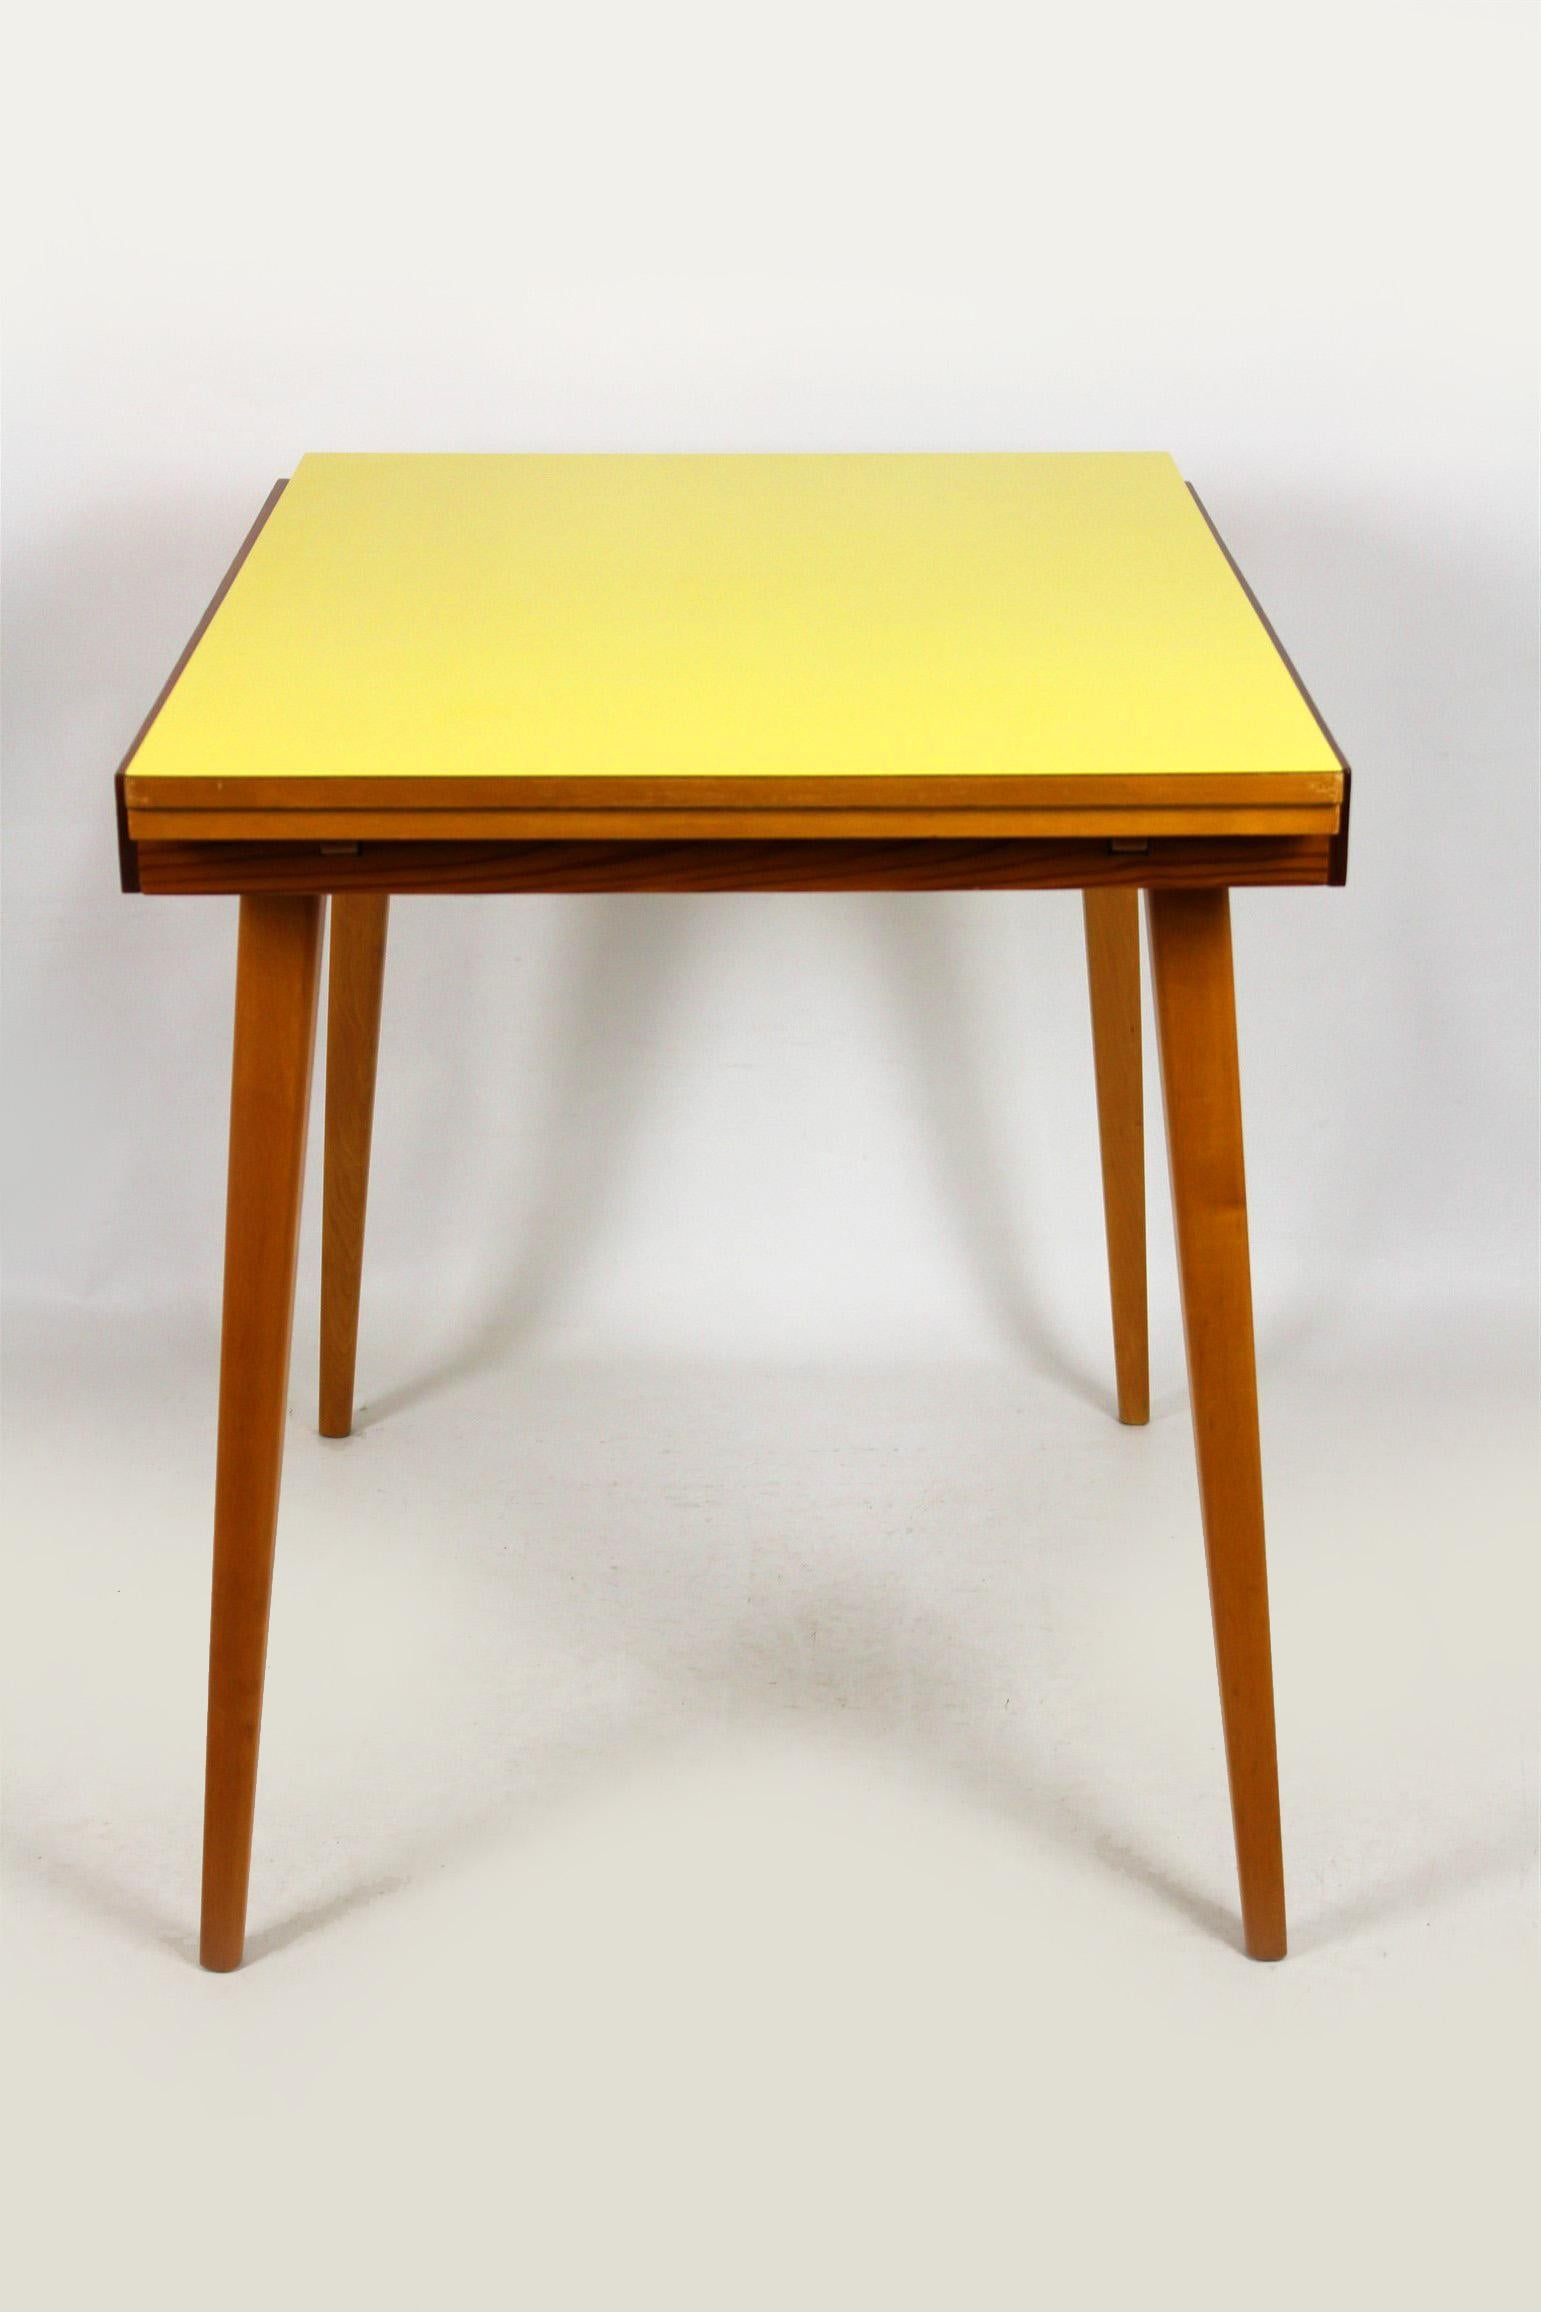 yellow formica folding dining table 1960s for sale at 1stdibs on Circular Folding Dining Table id=21212